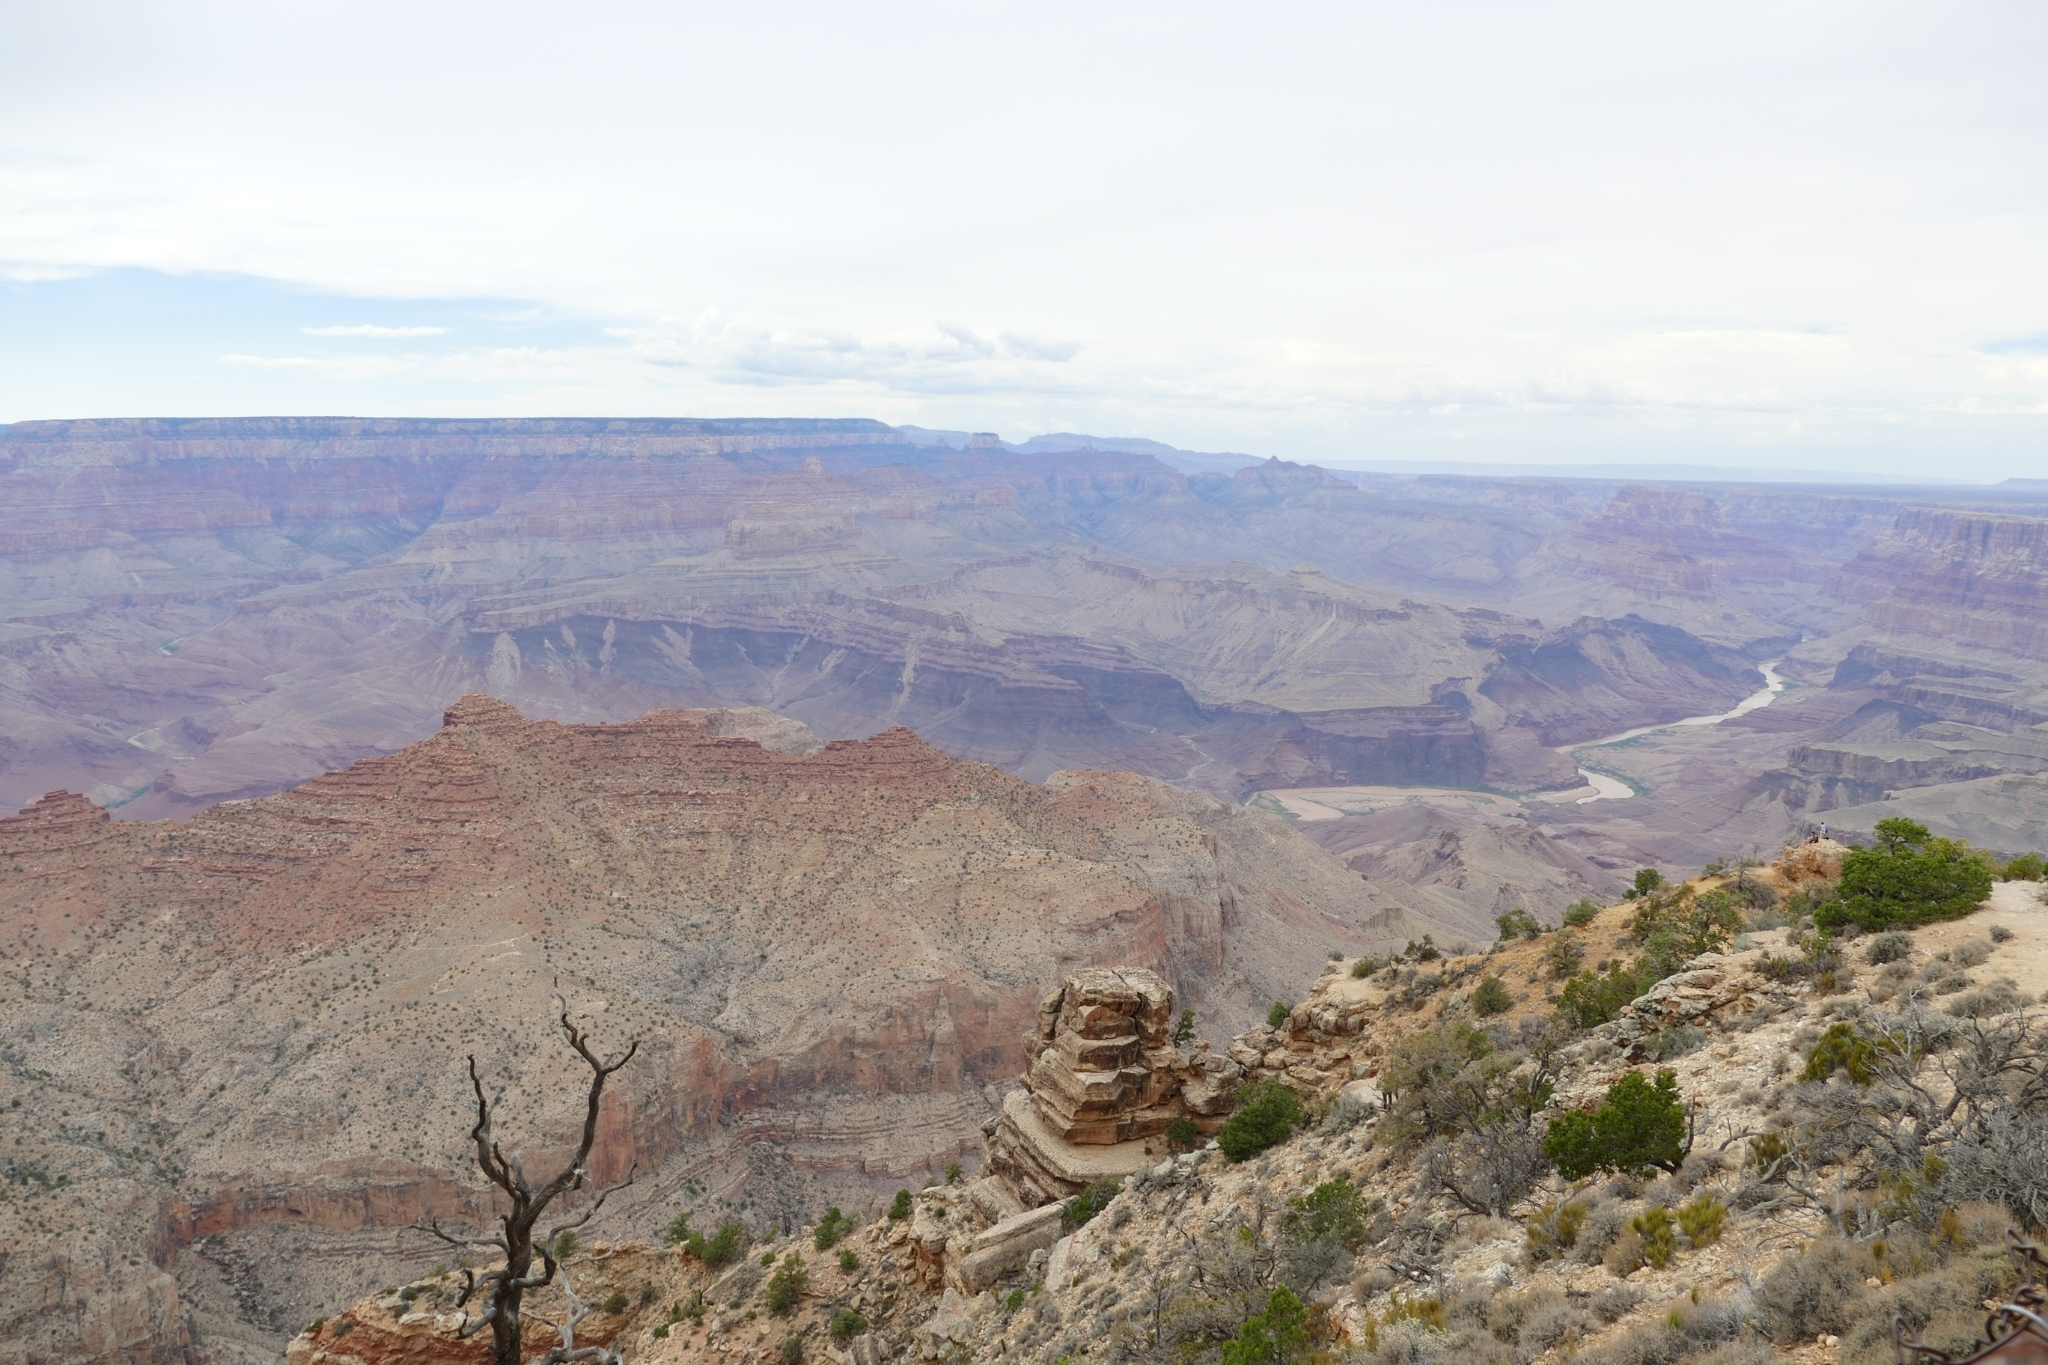 19 juillet 2018 - Grand Canyon